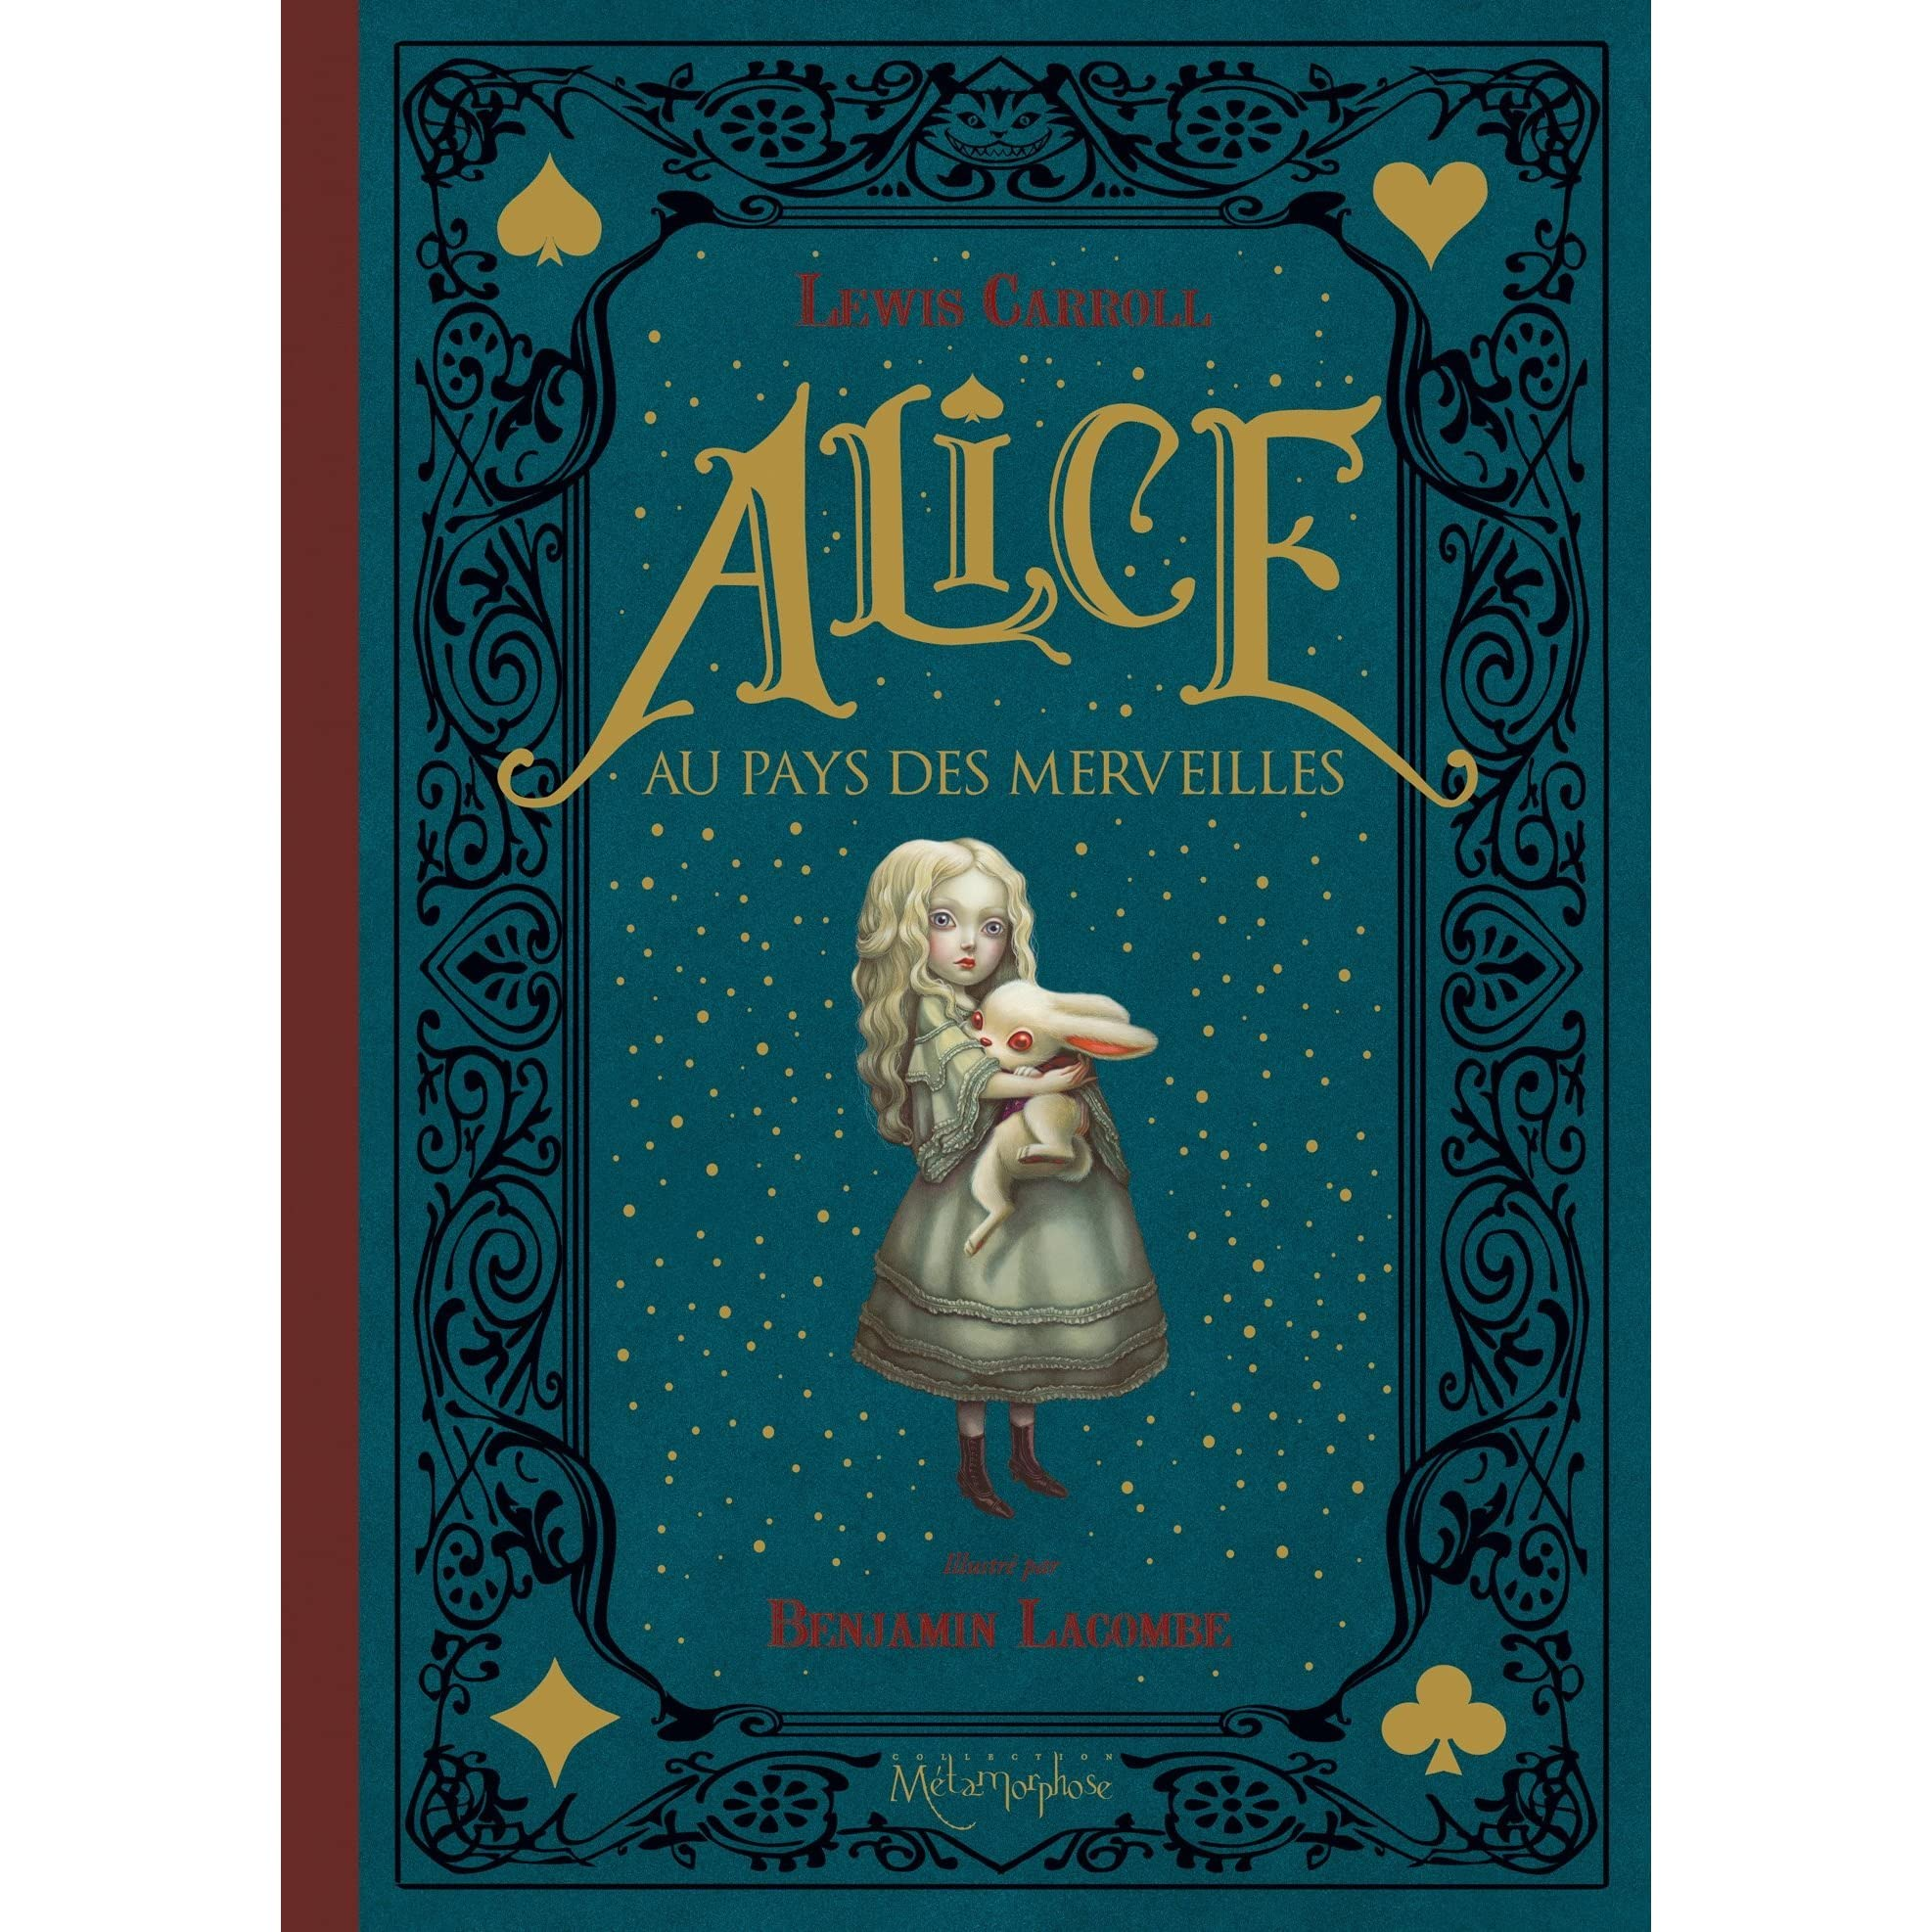 Alice au pays des merveilles by benjamin lacombe reviews discussion bookc - Mug alice au pays des merveilles ...